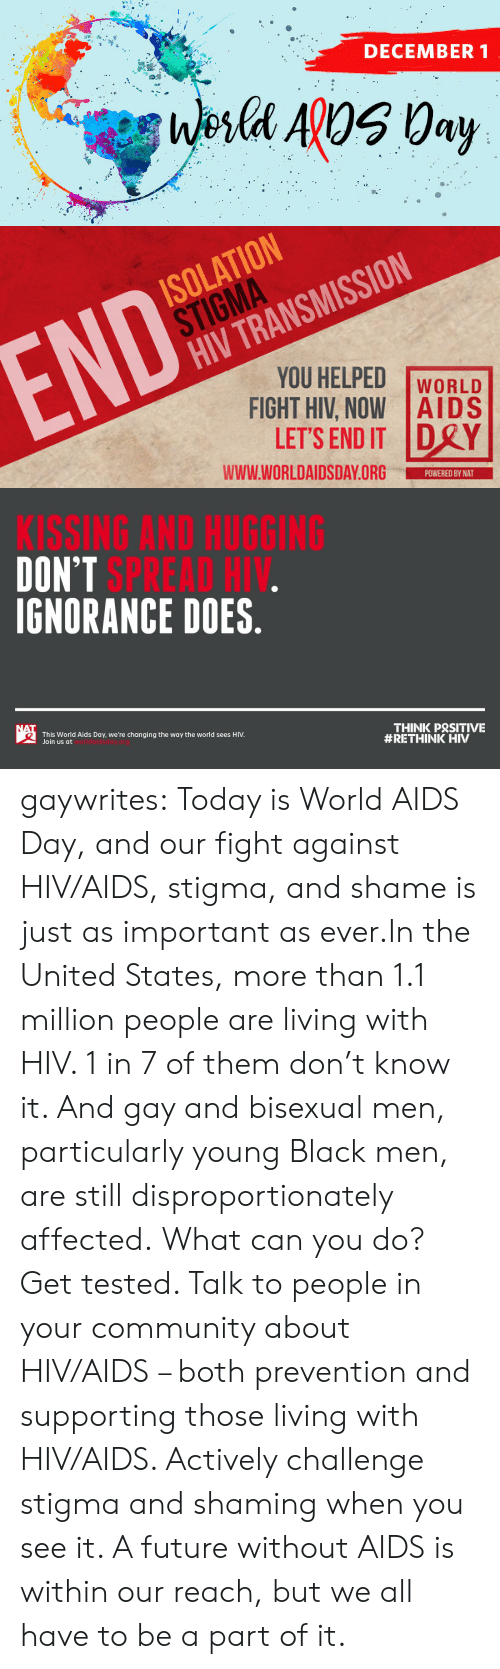 Changing: DECEMBER 1  Wesla ApOS 0ay   ISOLATION  STIGMA  HIV TRANSMISSION  END  YOU HELPED  FIGHT HIV, NOW AIDS  LET'S END IT DRY  WORLD  www.WORLDAIDSDAY.ORG  POWERED BY NAT   KISSING AND HUGGING  DON'T SPREAD HIV.  IGNORANCE DOES.  NAT  THINK PRSITIVE  #RETHINK HIV  This World Aids Day, we're changing the way the world sees HIV.  Join us at gaywrites:  Today is World AIDS Day, and our fight against HIV/AIDS, stigma, and shame is just as important as ever.In the United States, more than 1.1 million people are living with HIV. 1 in 7 of them don't know it. And gay and bisexual men, particularly young Black men, are still disproportionately affected. What can you do? Get tested. Talk to people in your community about HIV/AIDS – both prevention and supporting those living with HIV/AIDS. Actively challenge stigma and shaming when you see it. A future without AIDS is within our reach, but we all have to be a part of it.